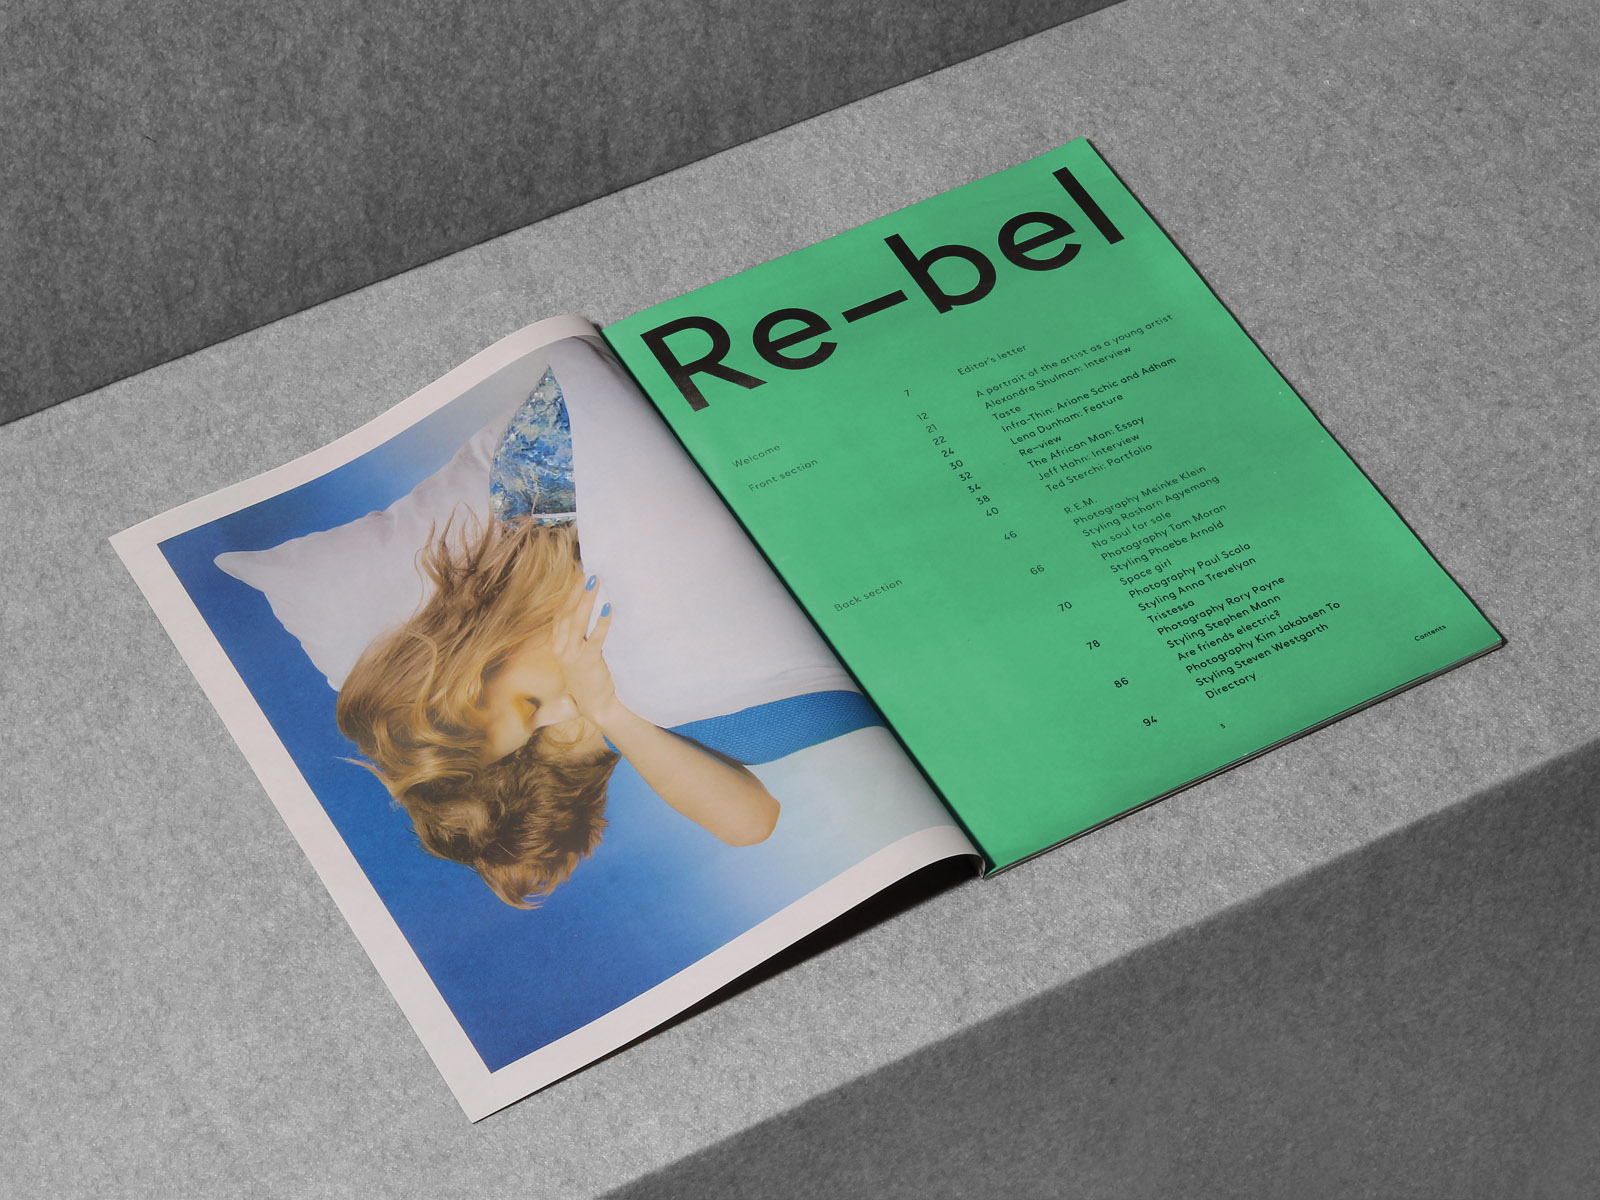 Re bel issue 12b